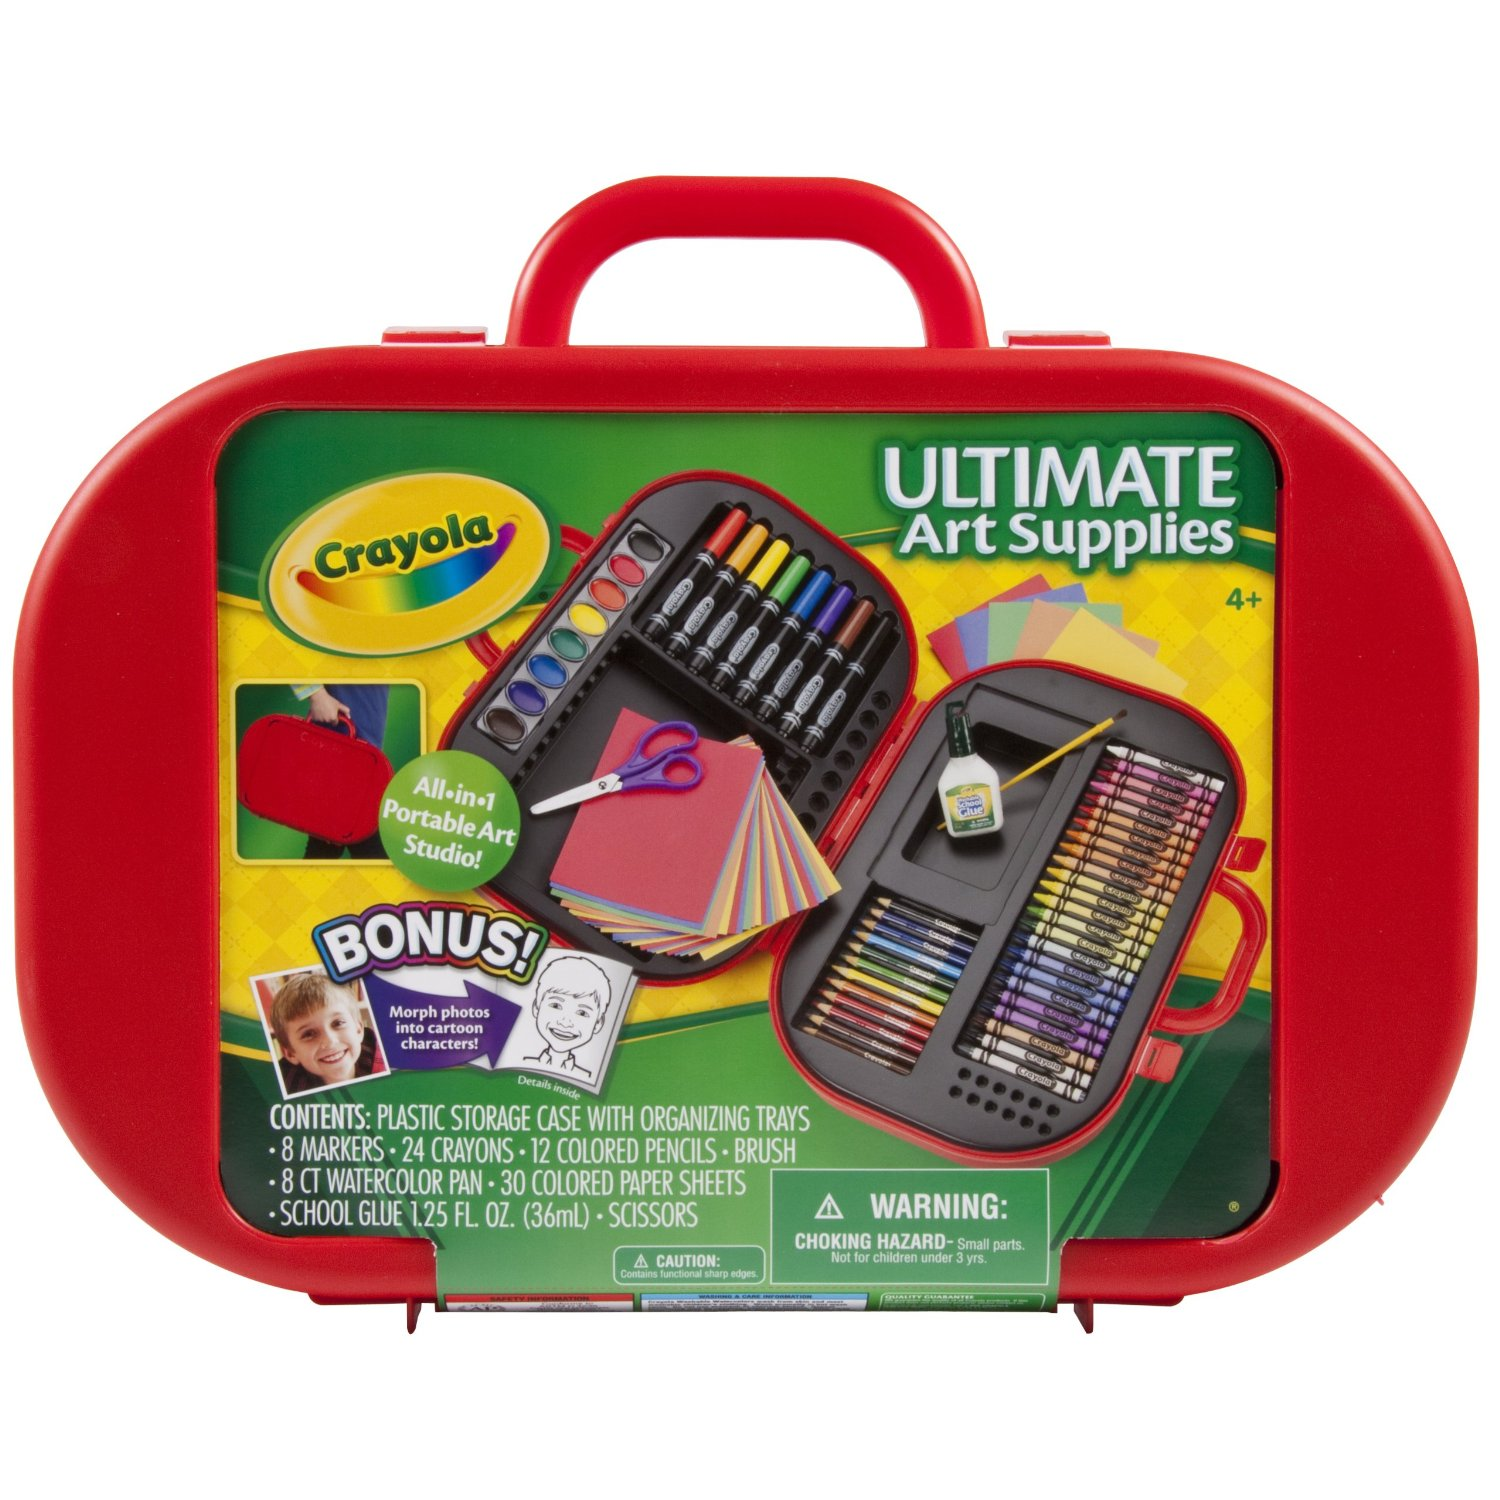 Crayola Innovative Holiday Prize Pack Review & Giveaway!!